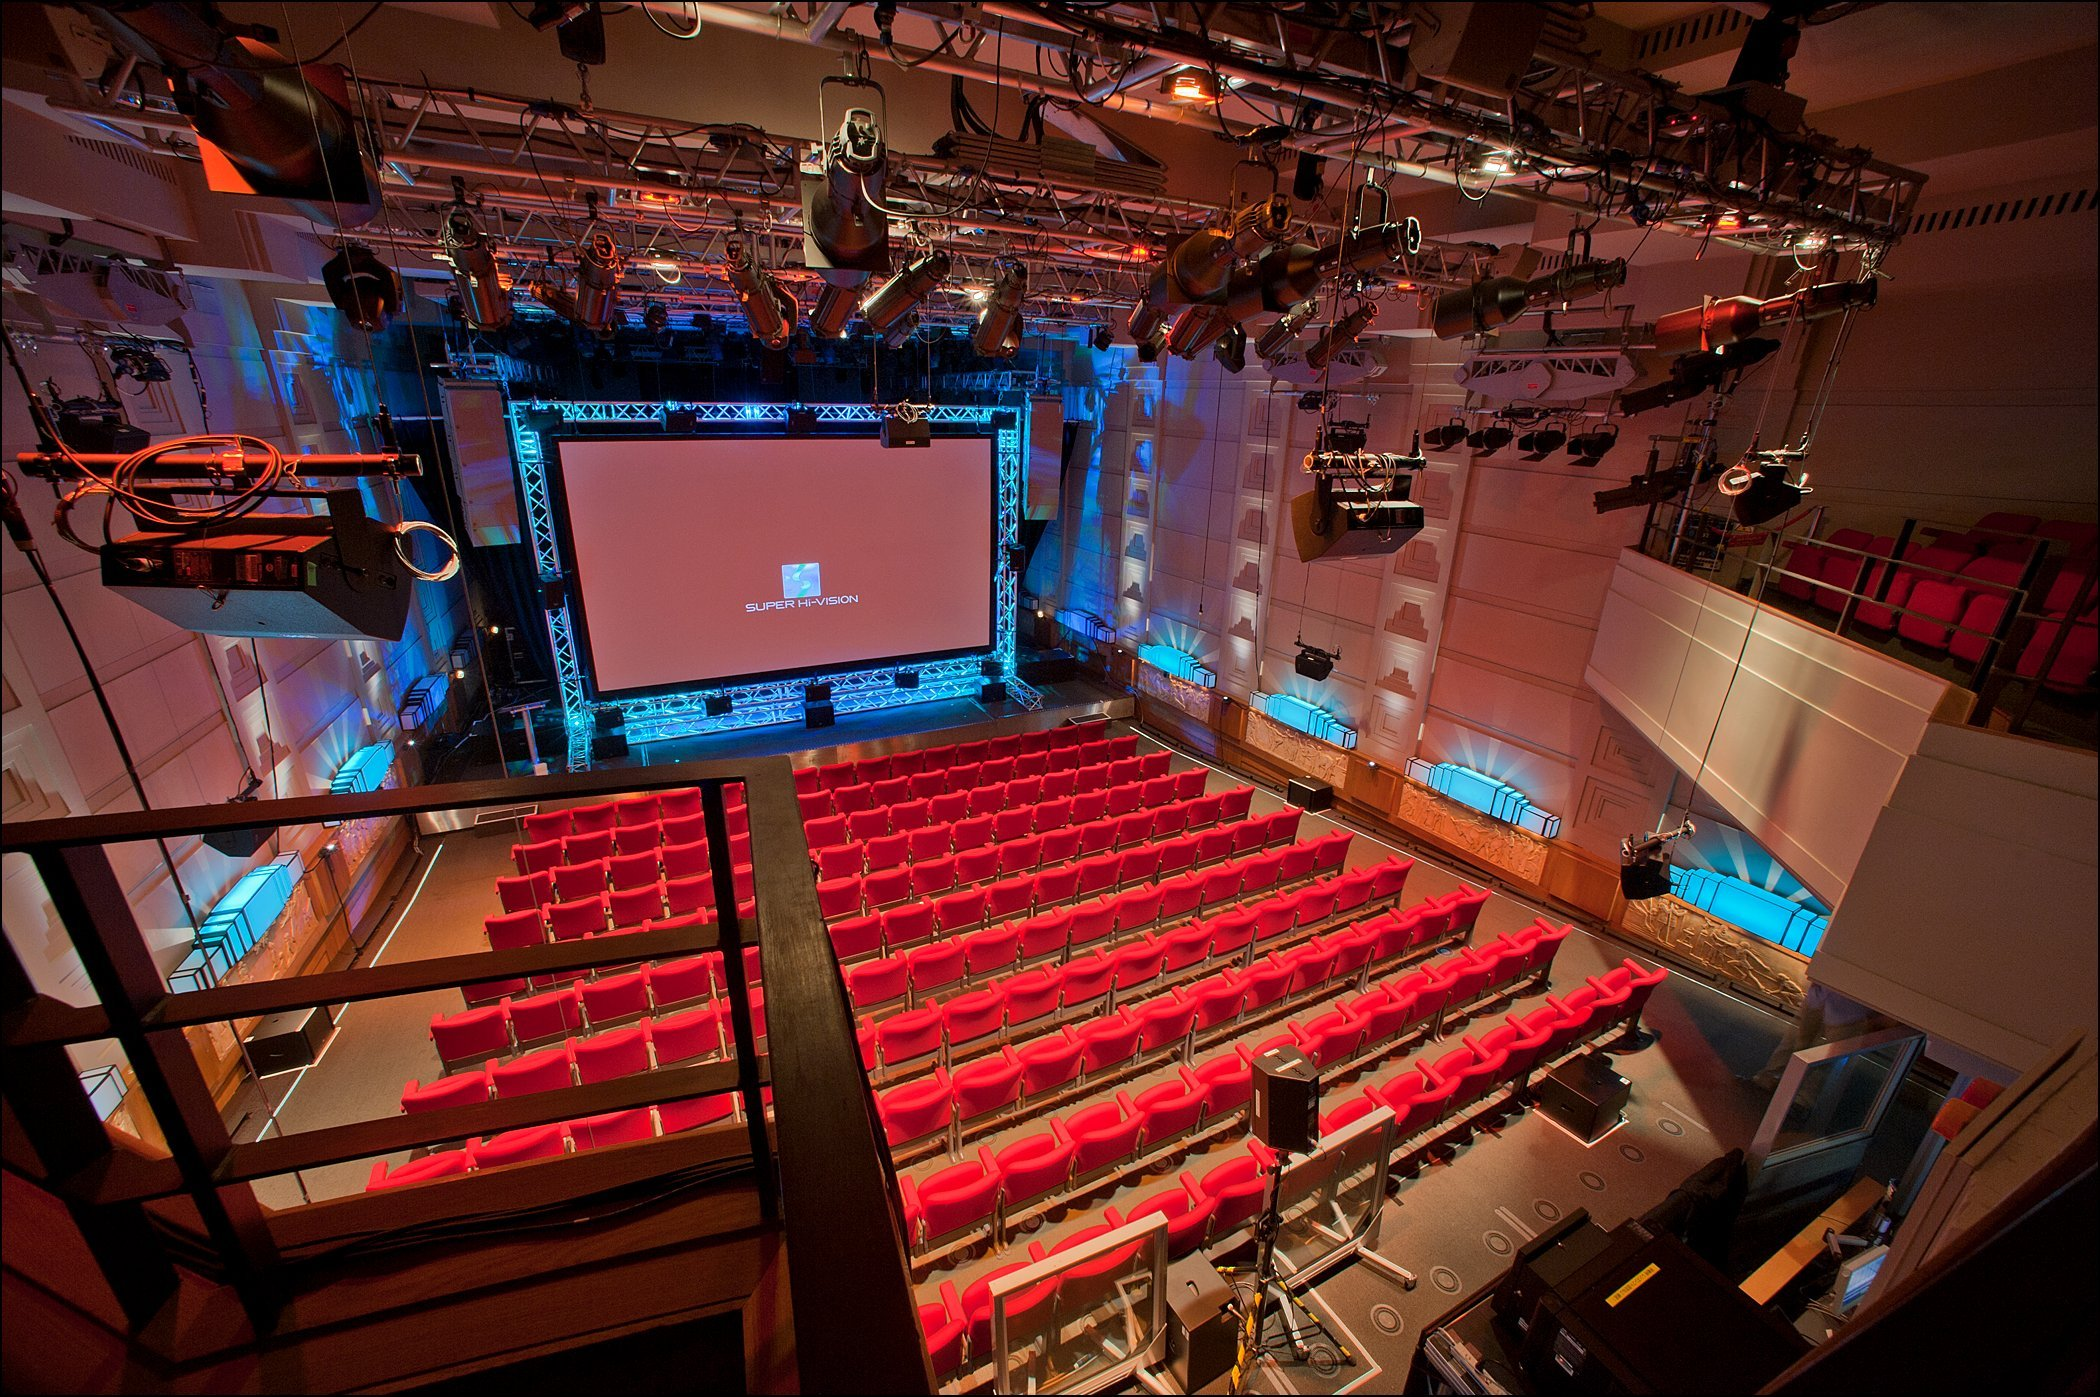 The Broadcasting House Radio Theatre with Super Hi Vision installed for the Olympics